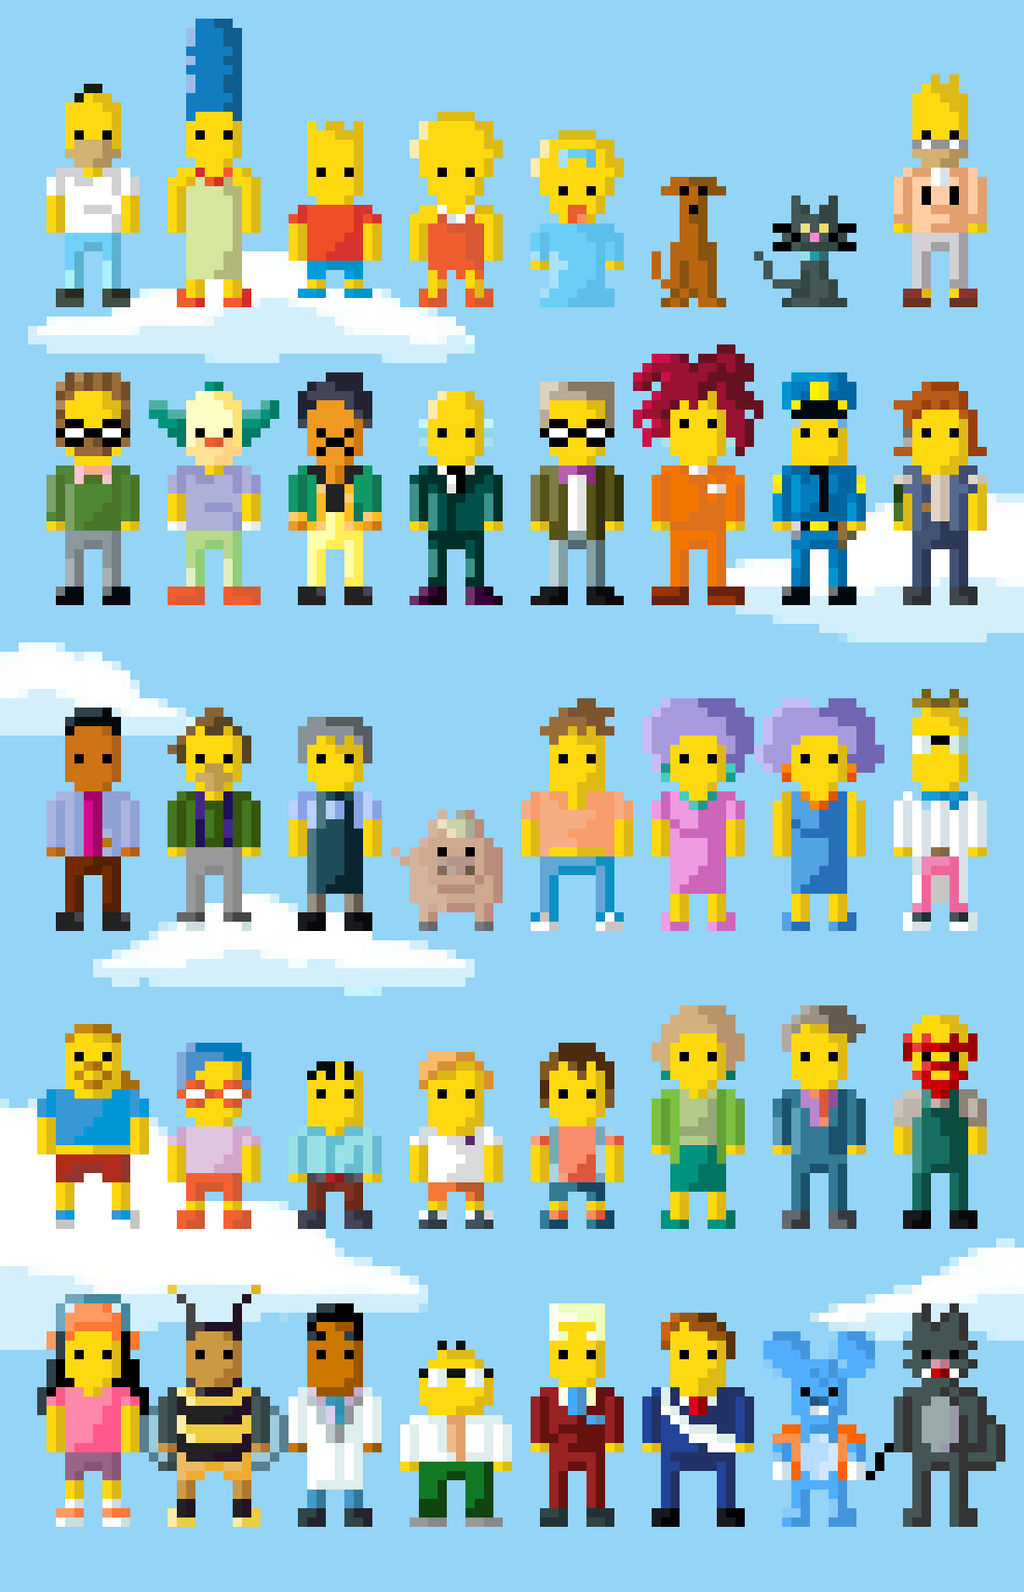 Simpsons Characters 8 Bit Extended By Lustriouscharming On